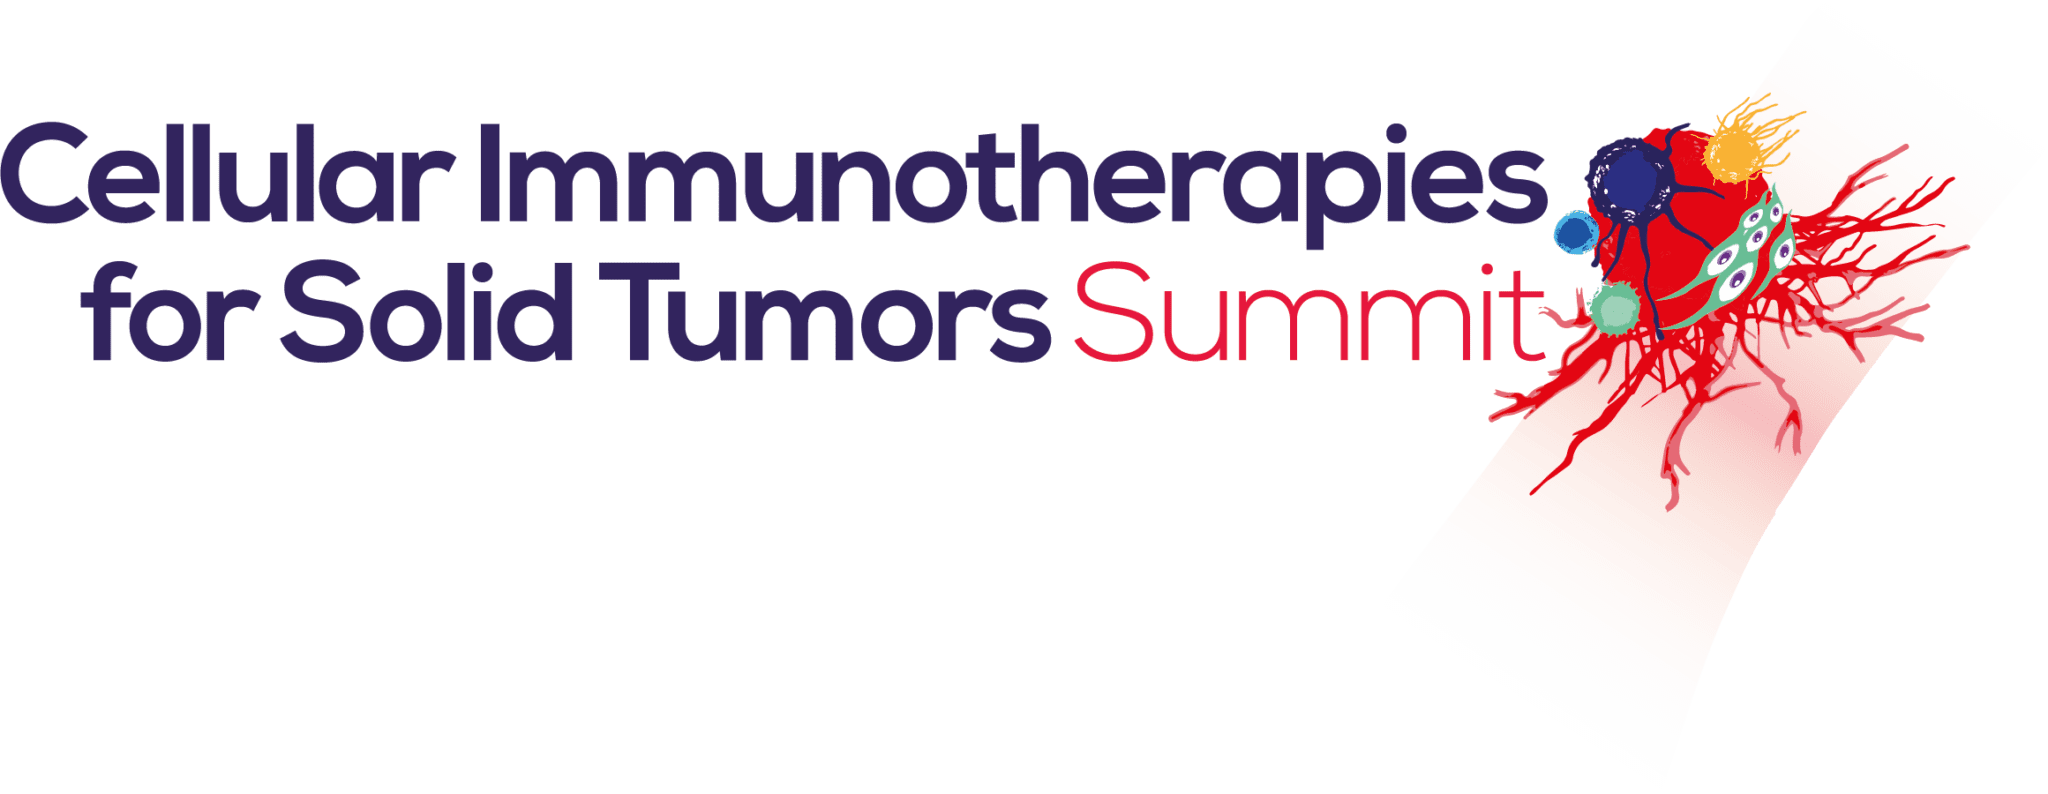 Cellular-Immunotherapies-for-Solid-Tumors-logo-2048x794-1